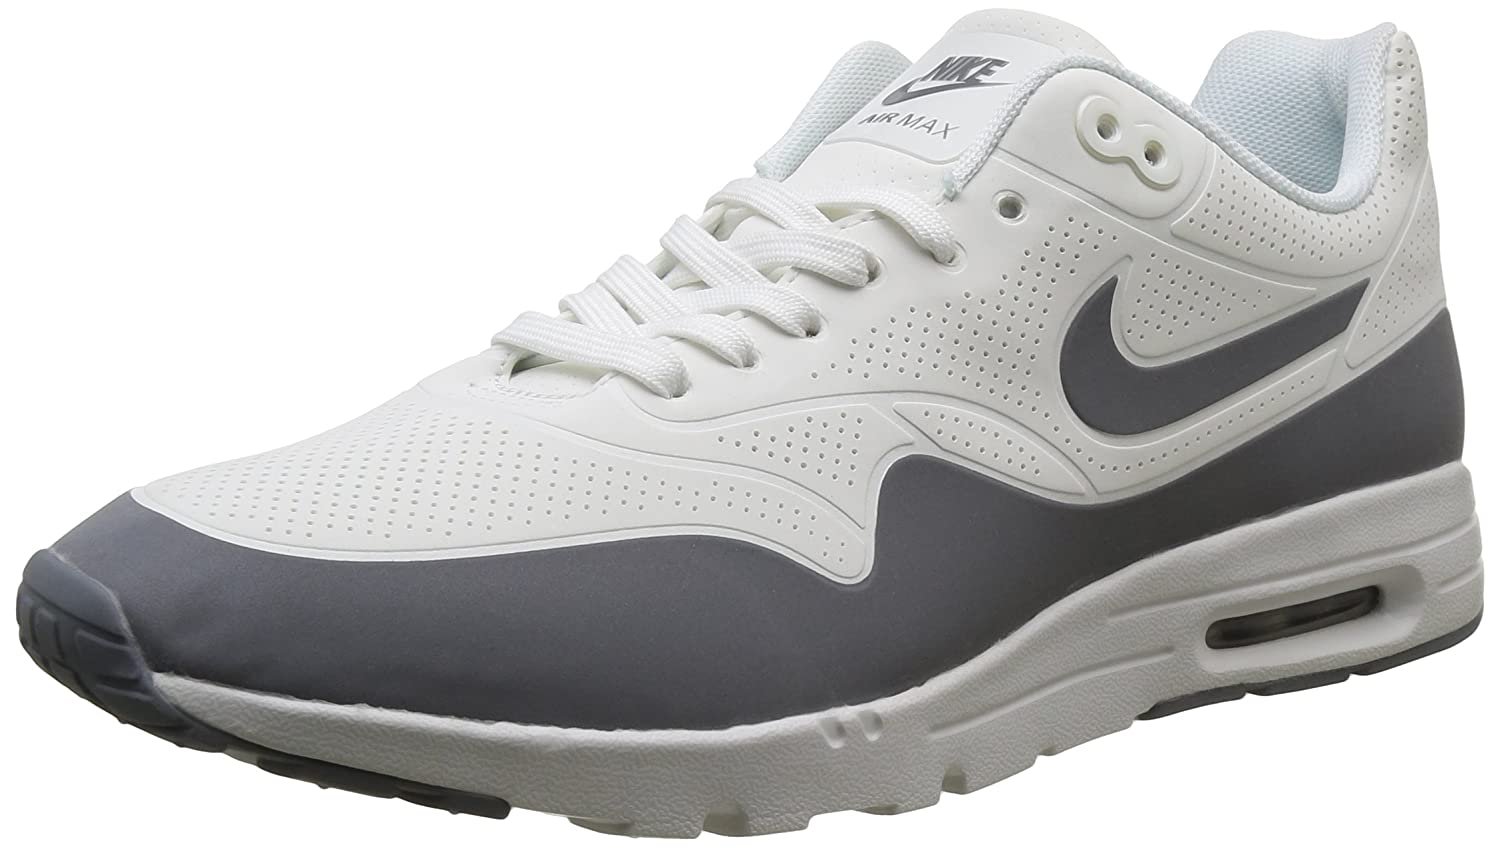 89a4ced232 Nike Air Max 1 Essential WMNs Grey/Black 599820-117: Nike: Amazon.ca: Shoes  & Handbags